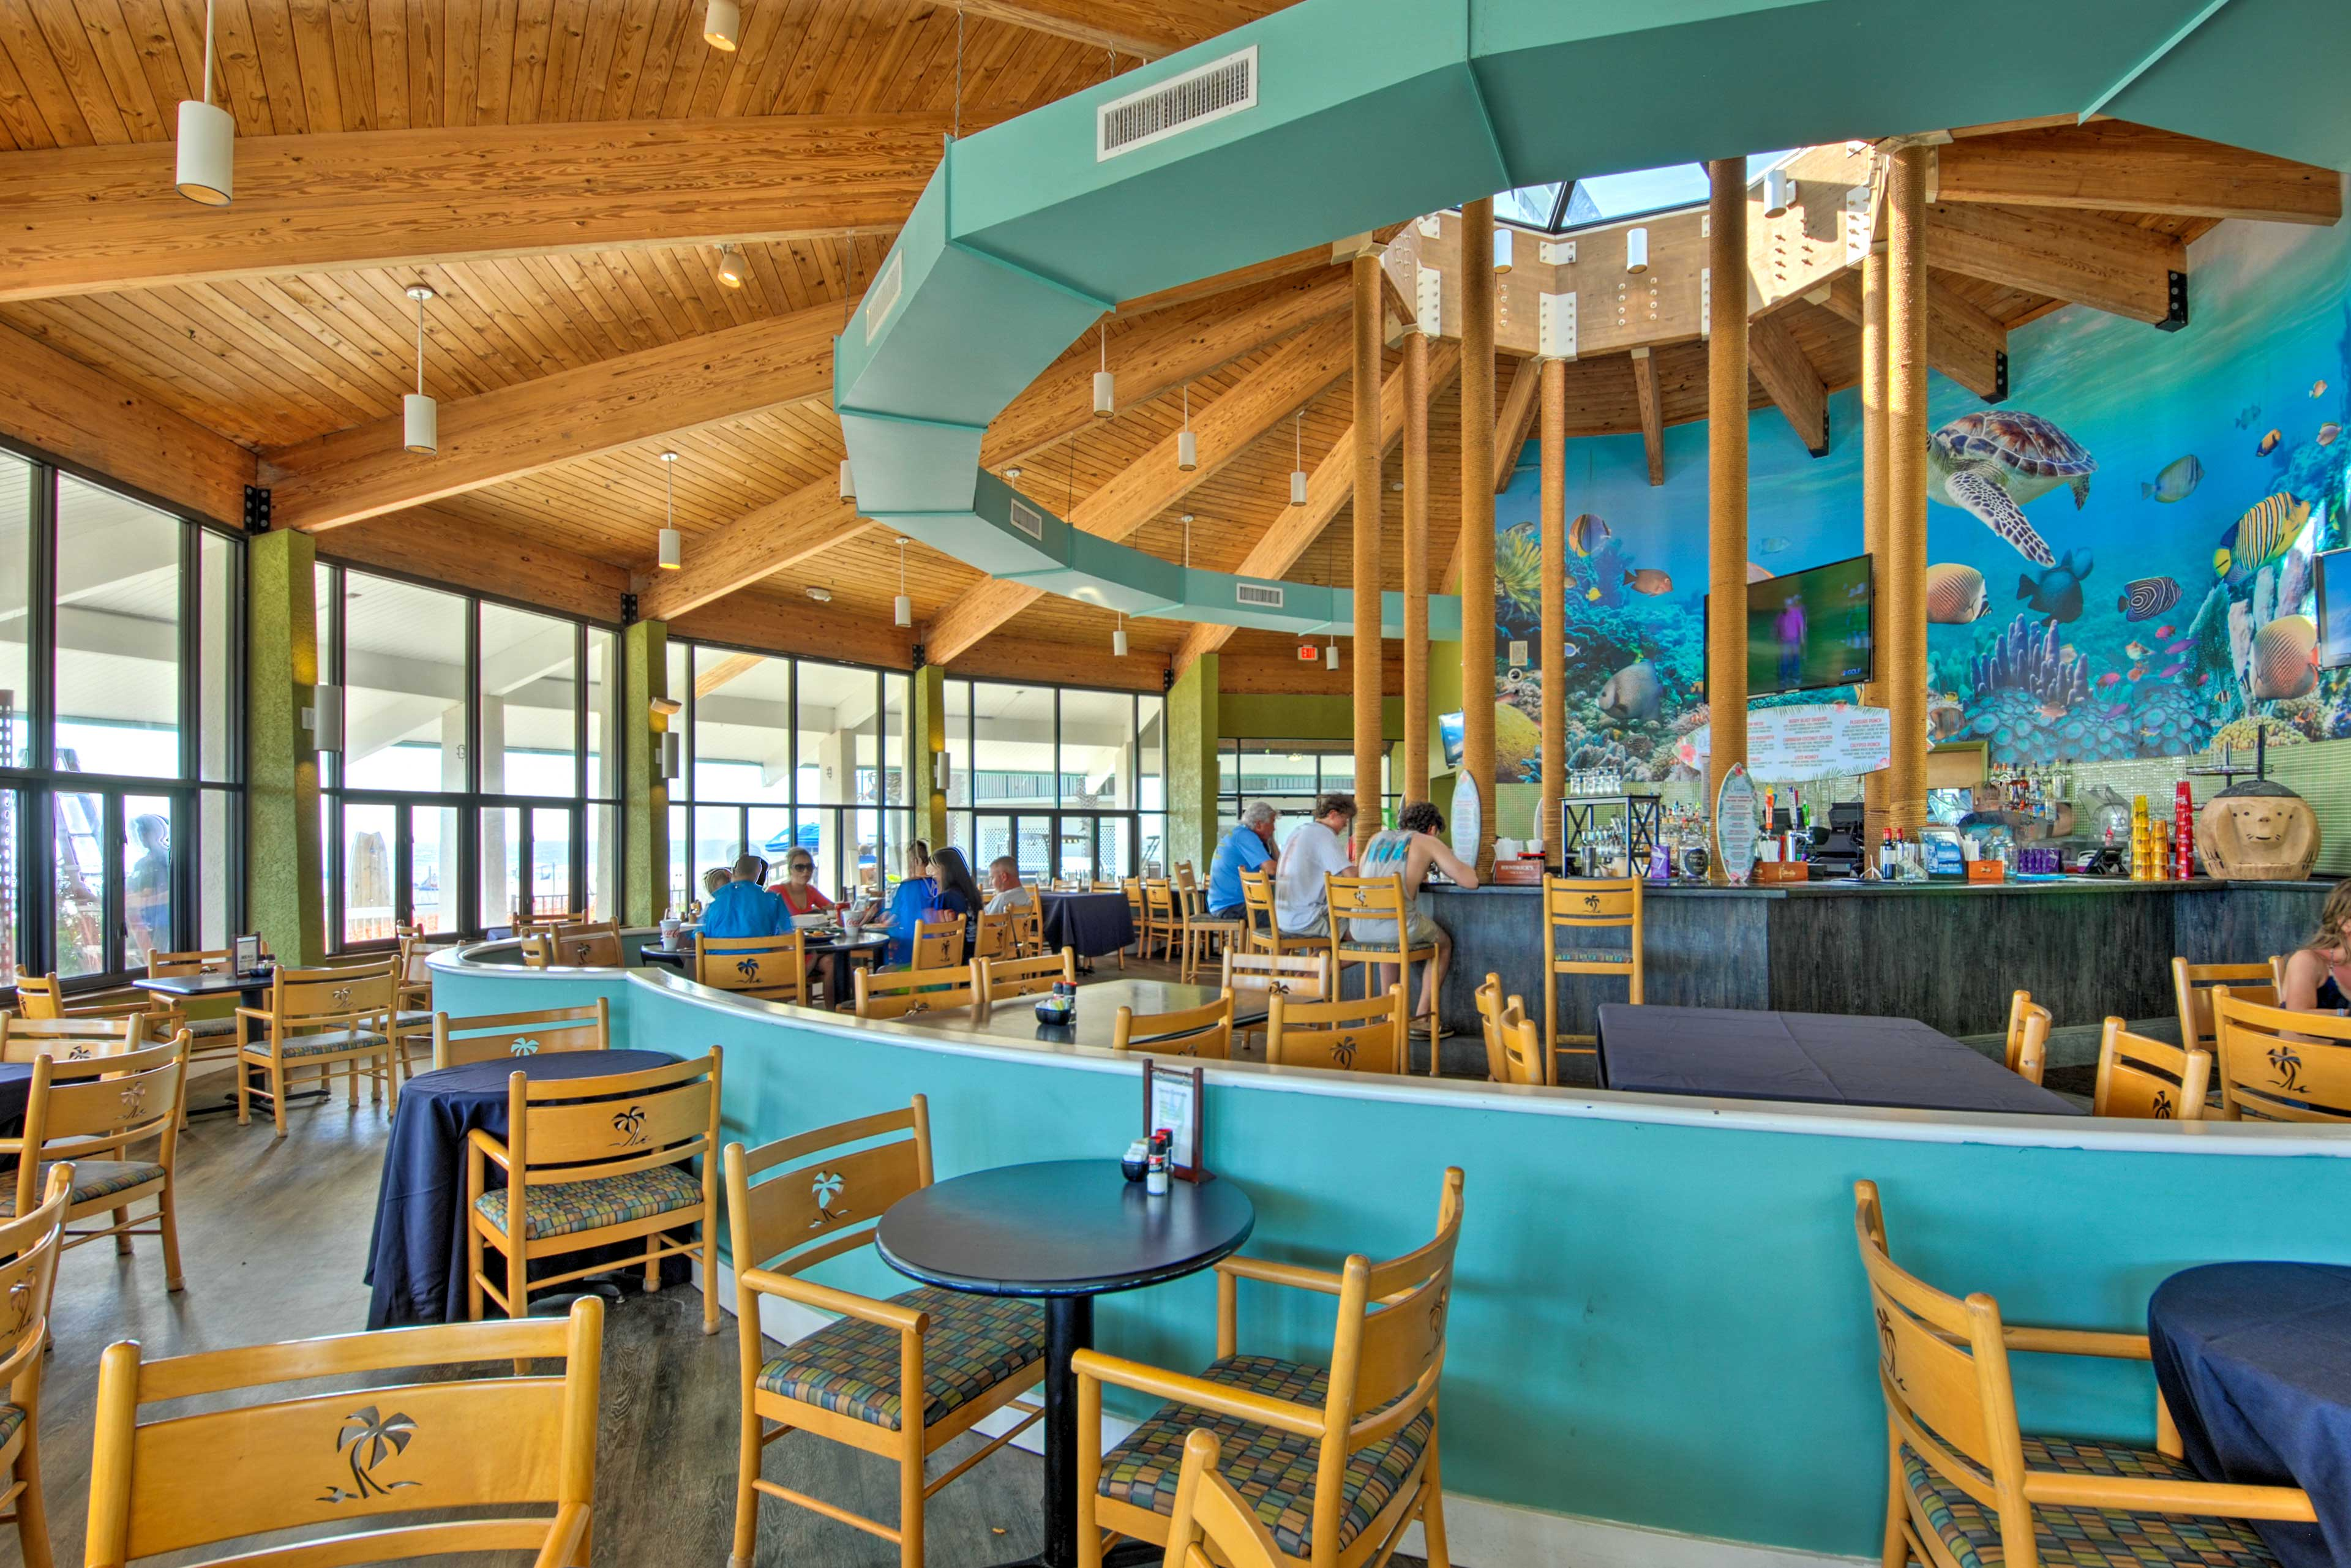 Grab a bite at the on-site restaurant.